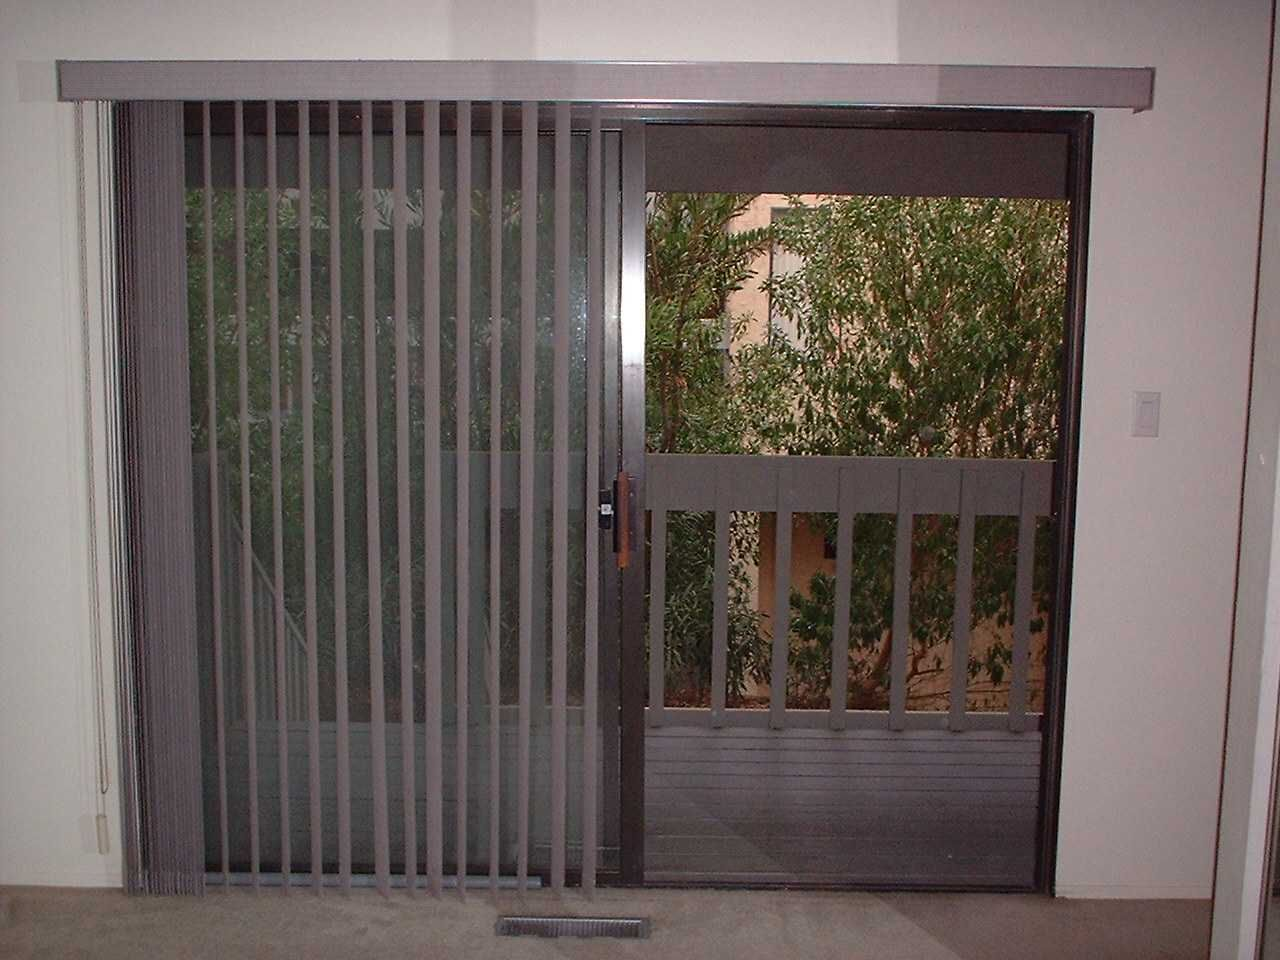 Sliding glass door blinds ideas home design and decor is built in patio door blinds a good choice drapery room ideas image of stylish sliding glass planetlyrics Images